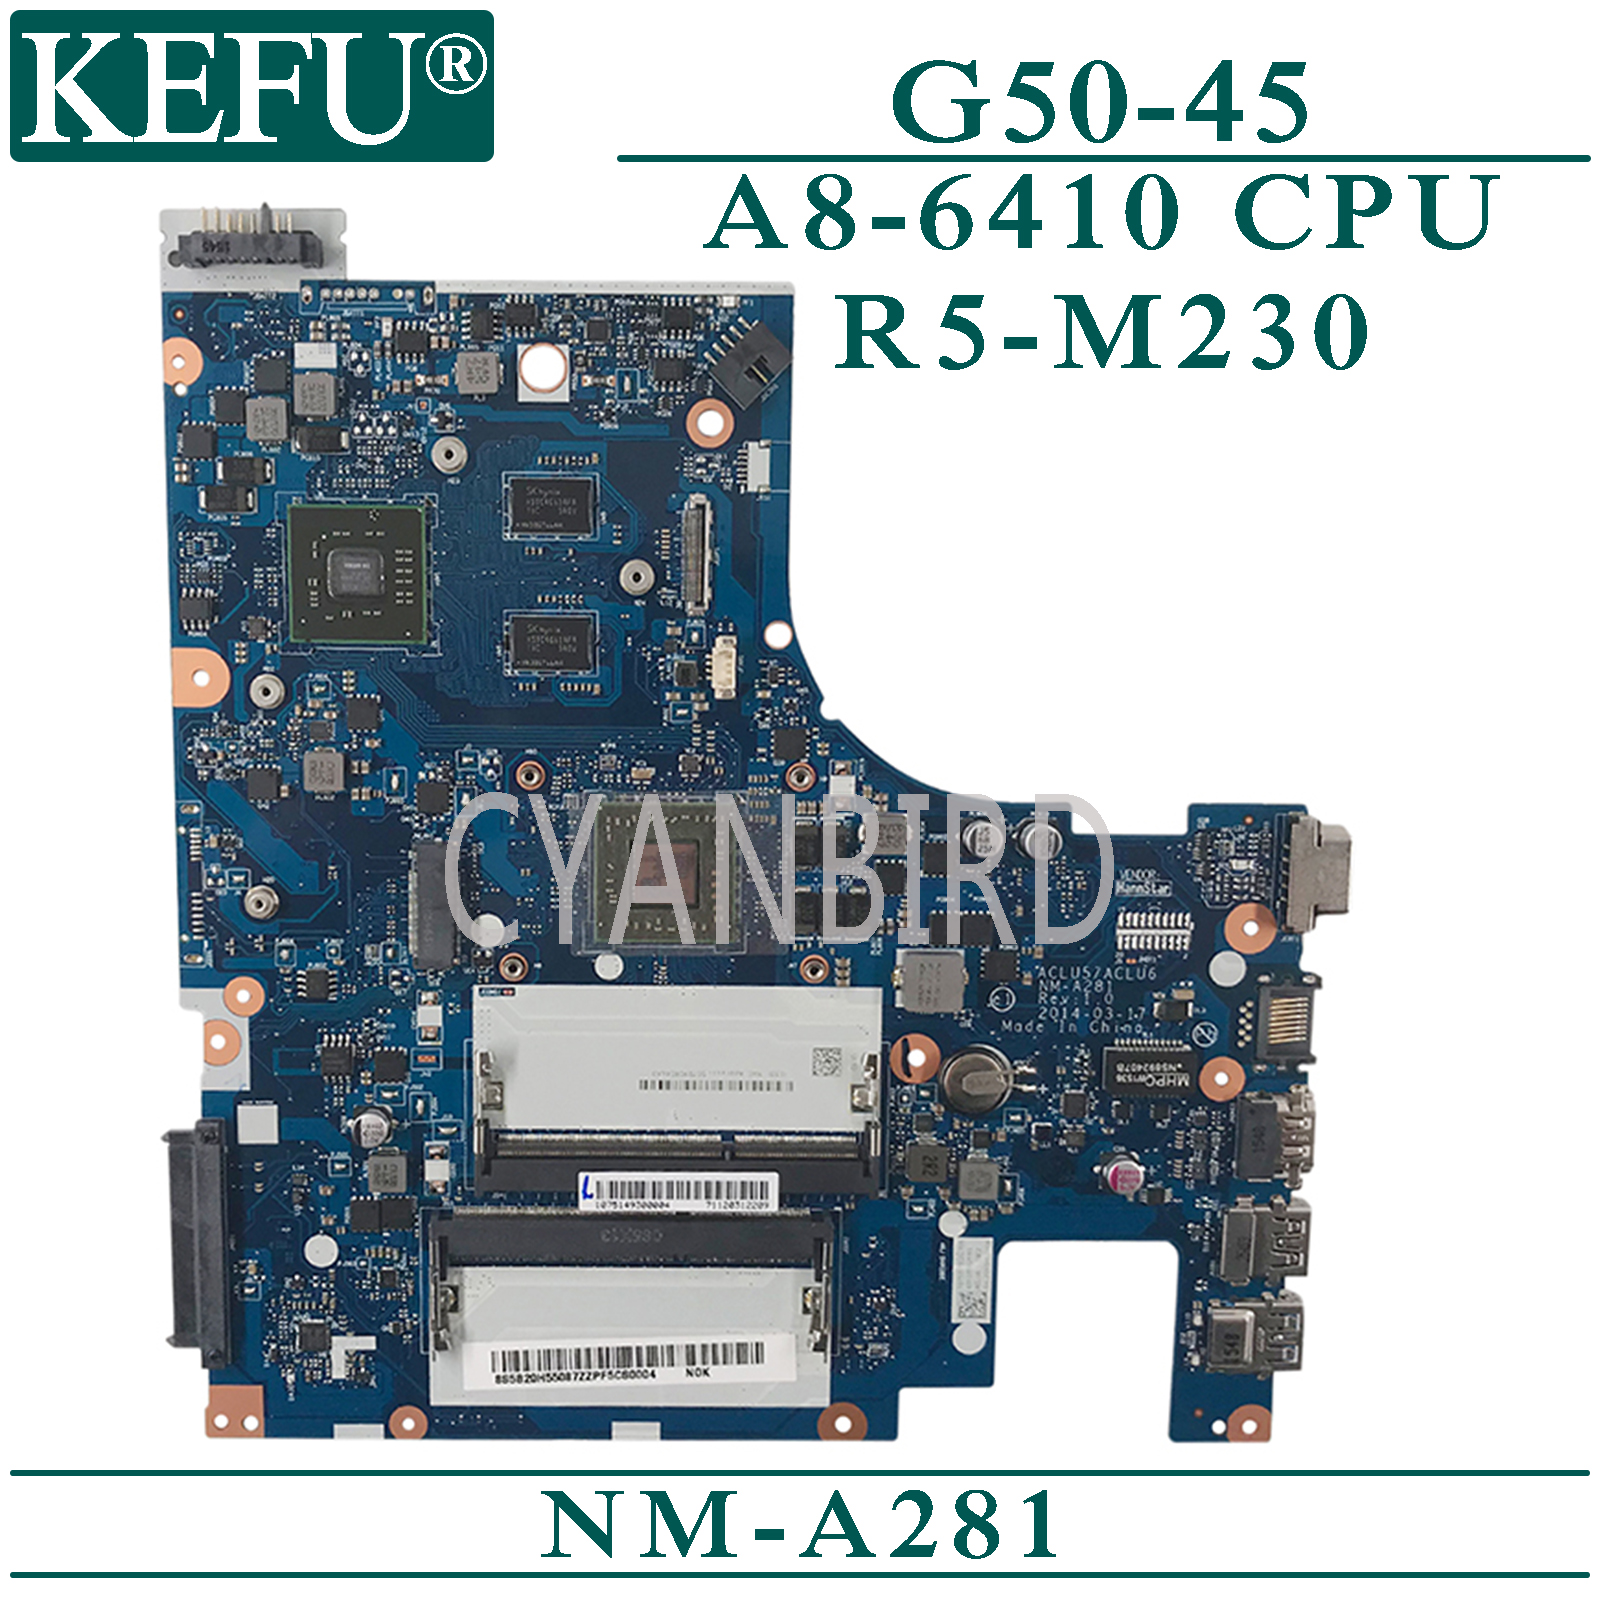 KEFU NM-A281 original mainboard for Lenovo G50-45 with A8-6410 R5-M230 Laptop motherboard